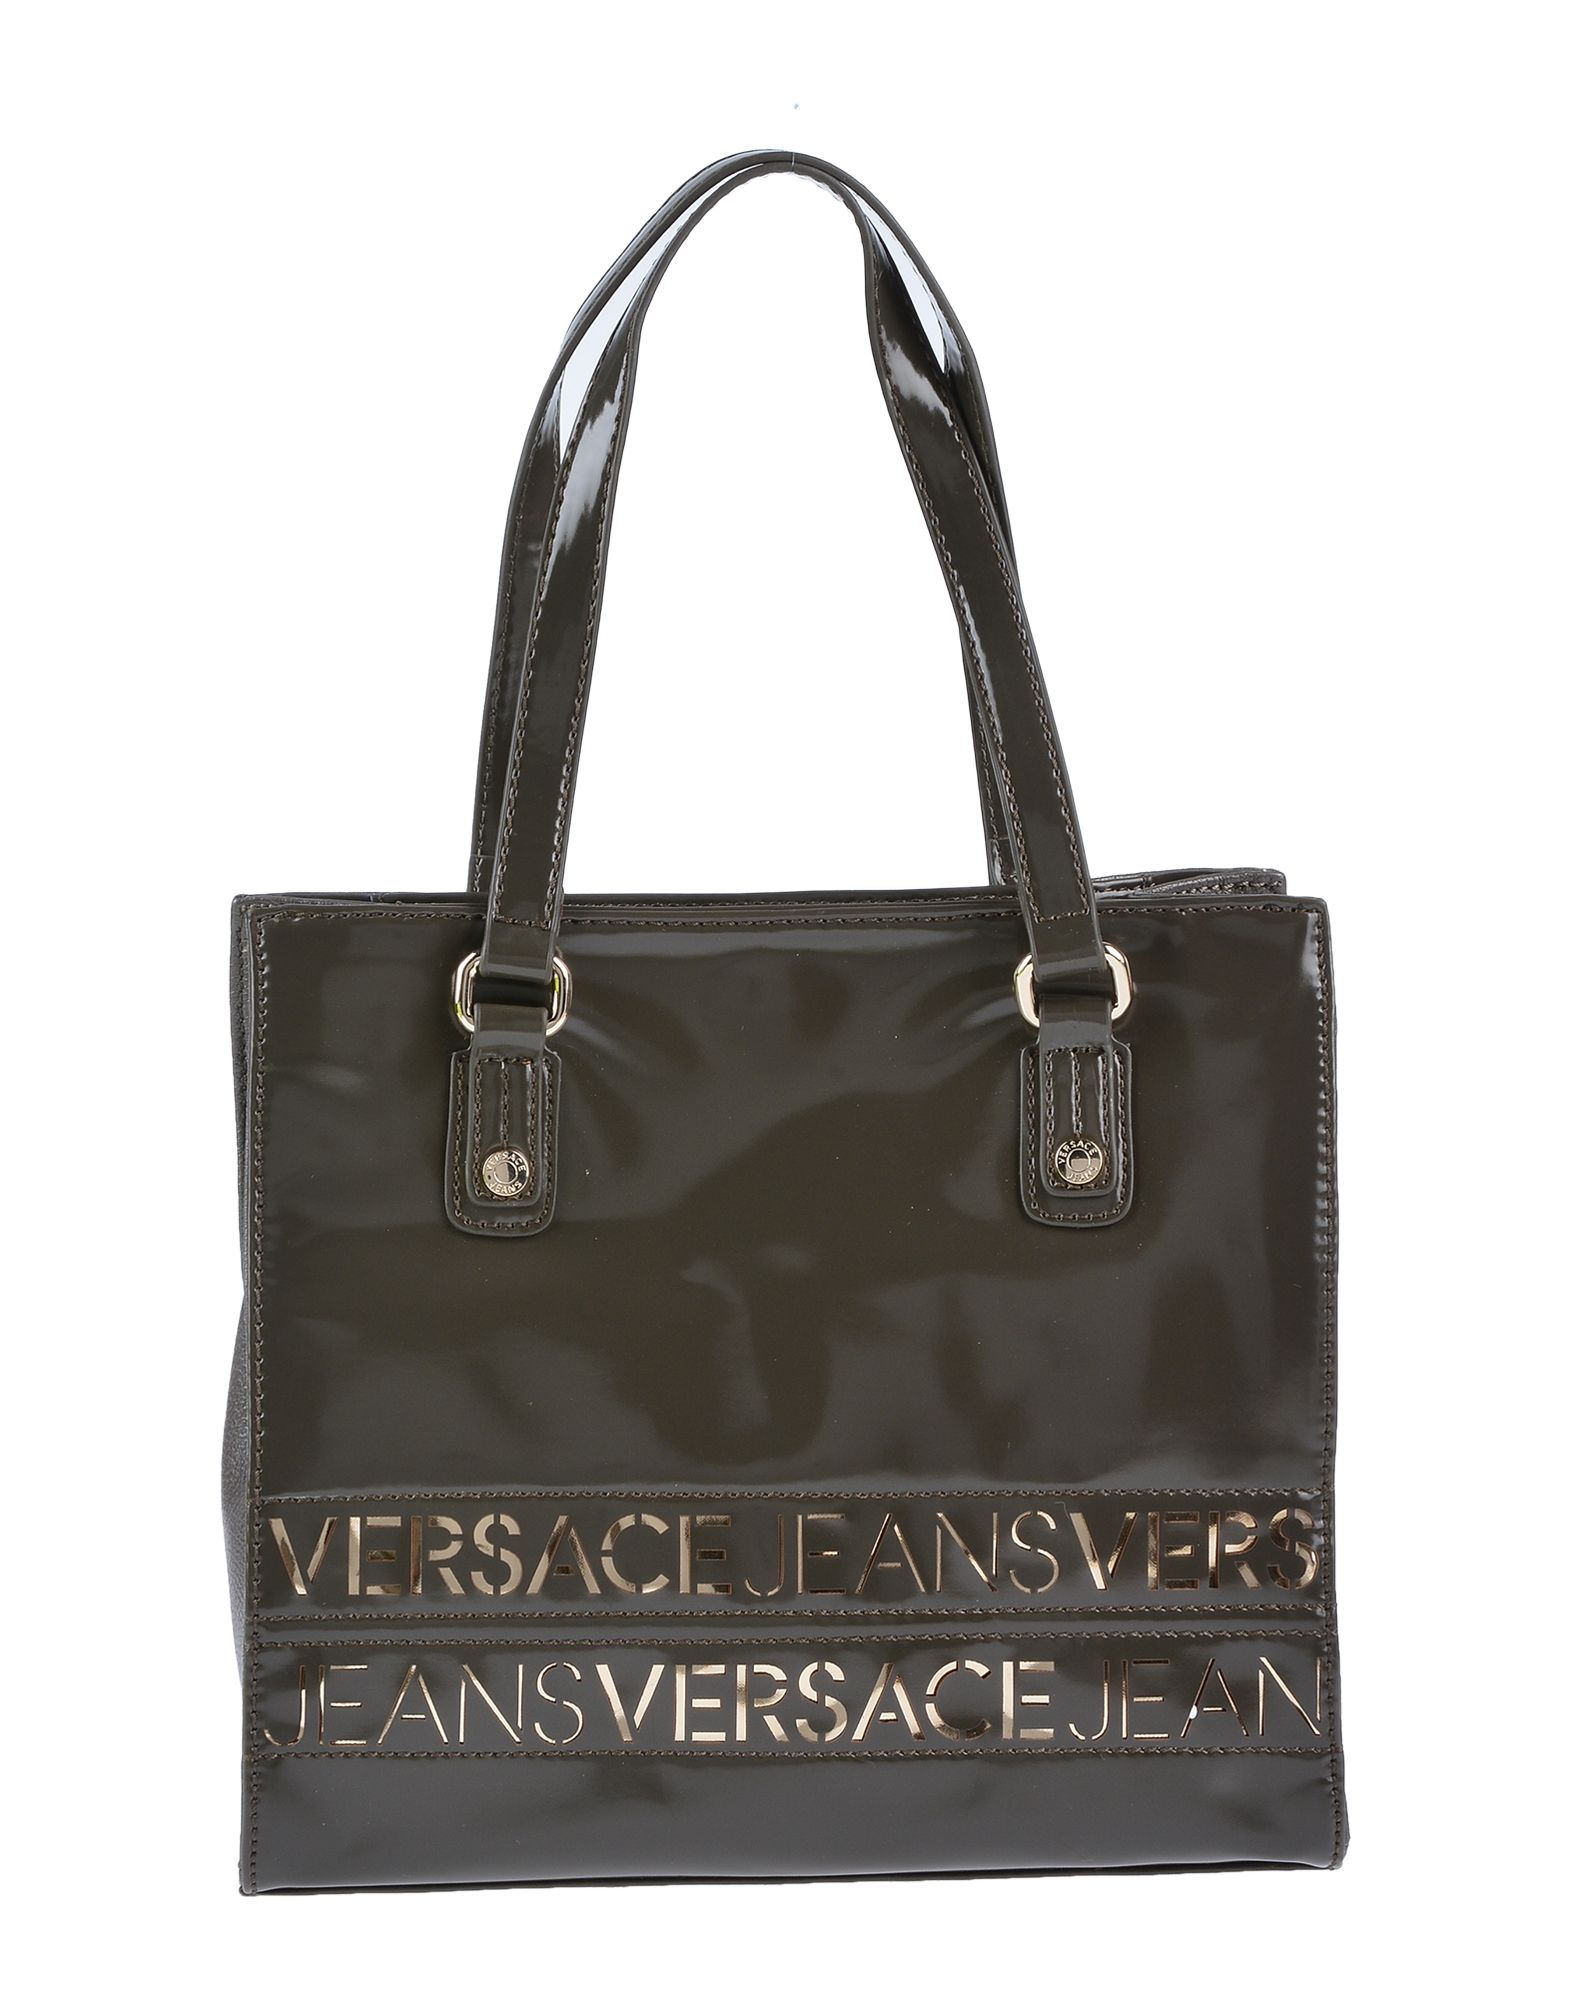 5d82b8e91302 Versace Jeans Women Spring-Summer and Fall-Winter Collections - Shop online  at YOOX